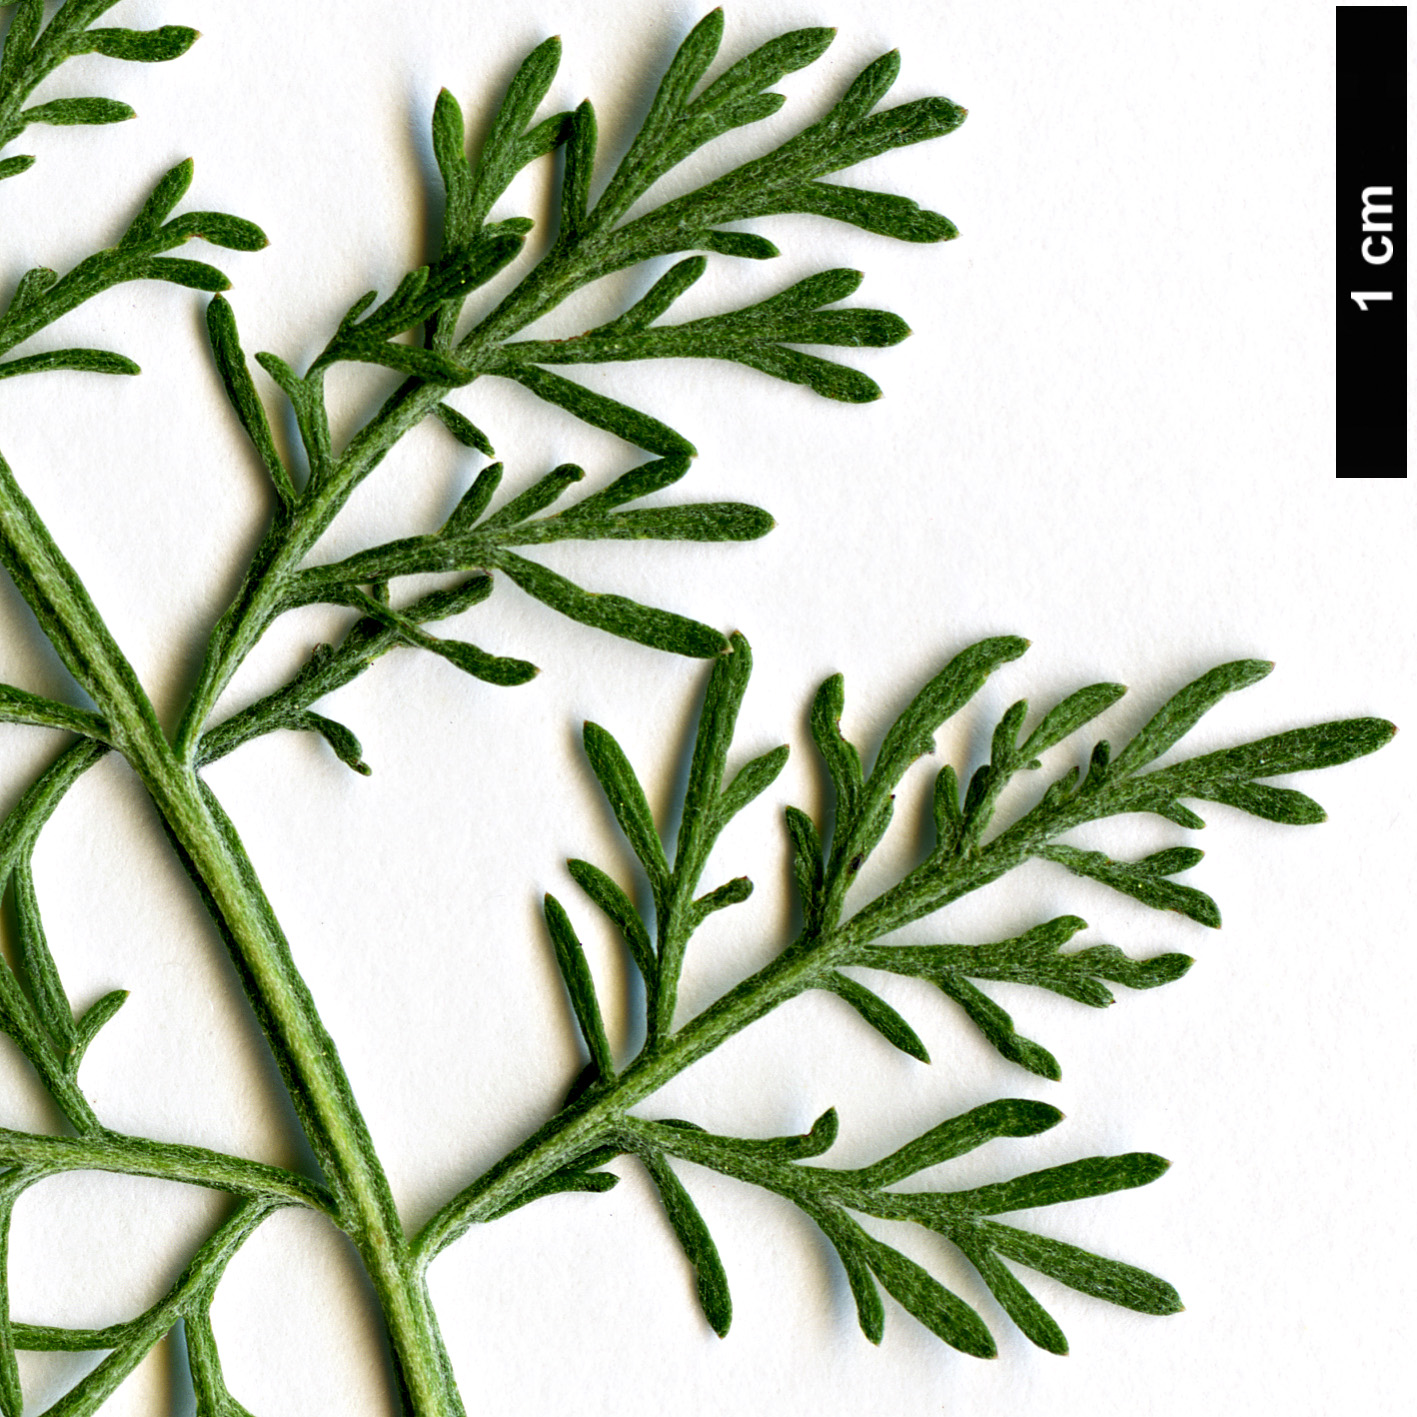 High resolution image: Family: Asteraceae - Genus: Artemisia - Taxon: abrotanum